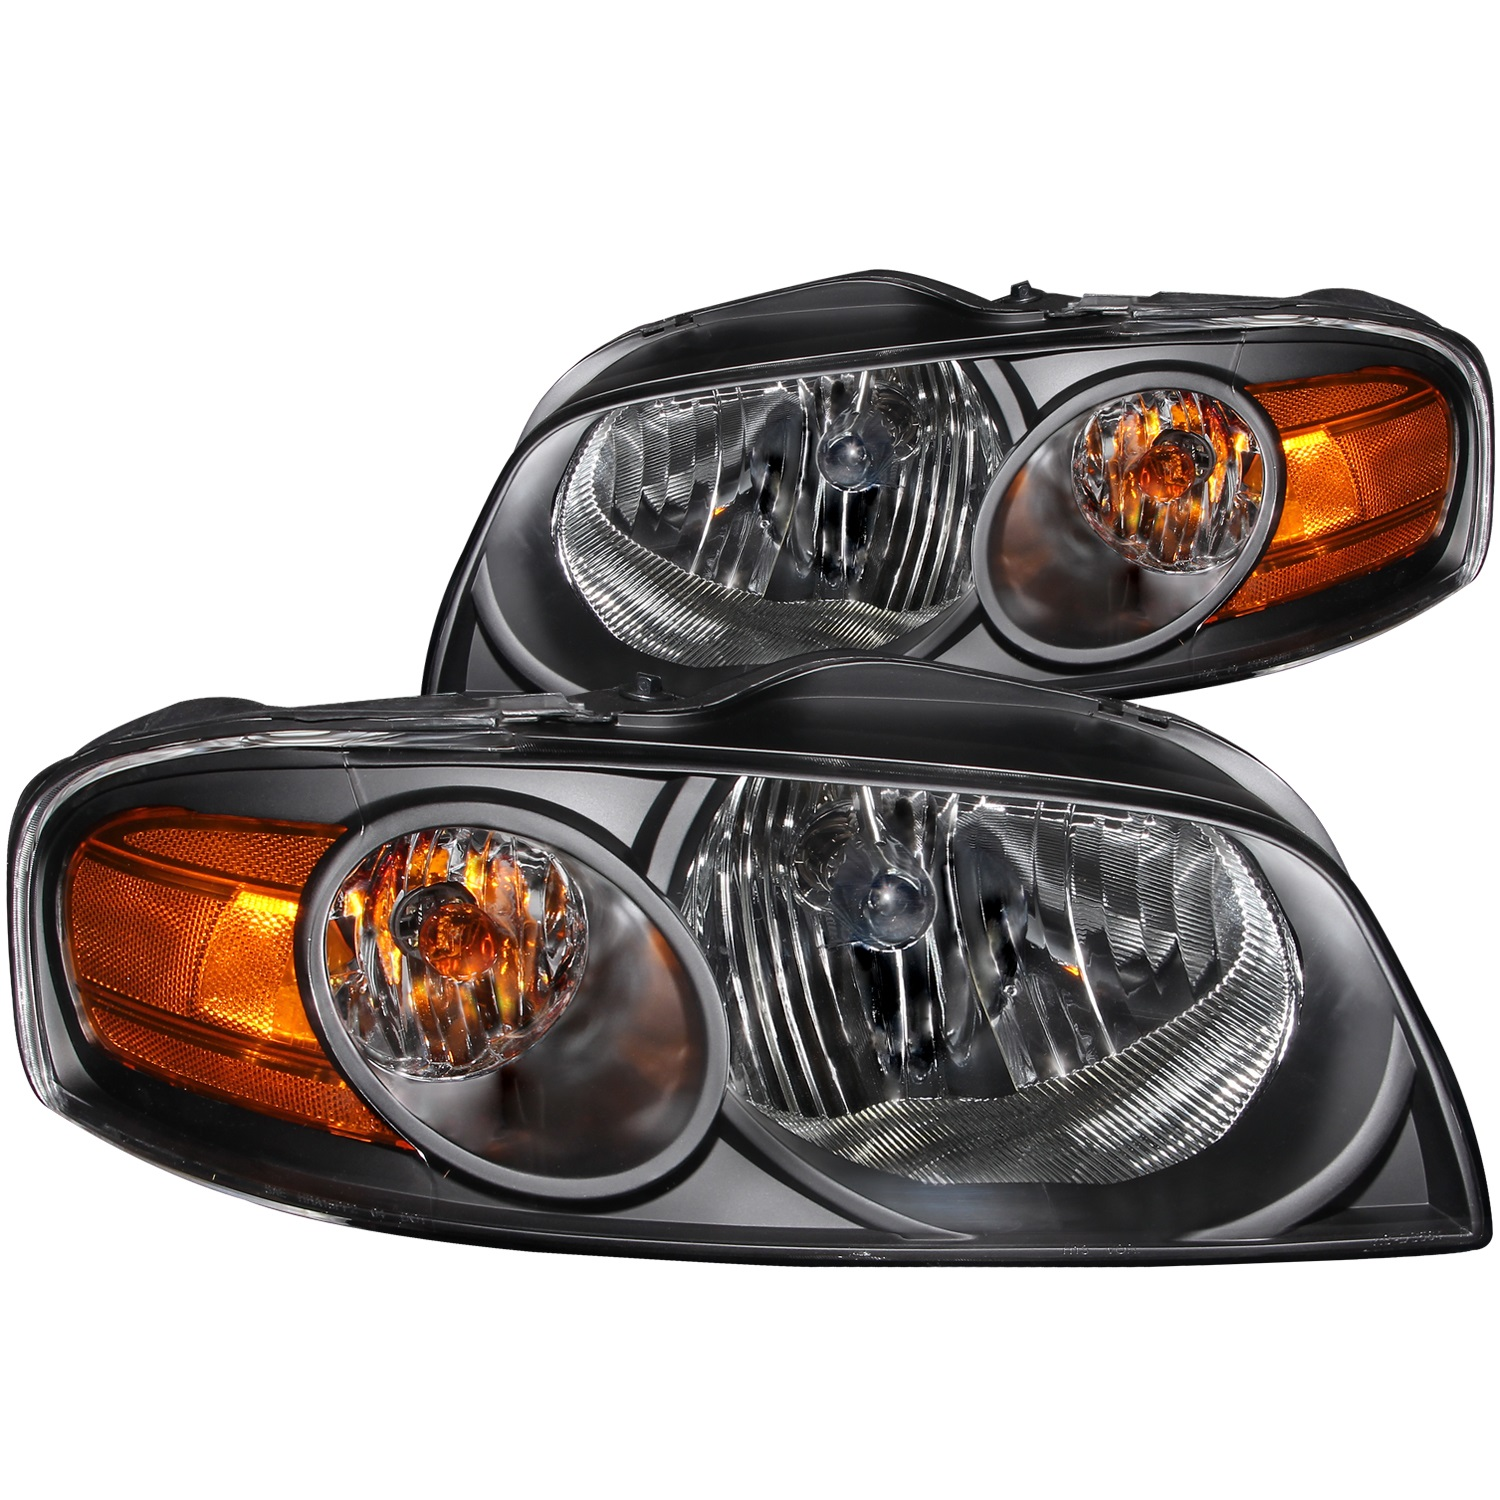 Anzo USA 121235 Crystal Headlight Set Fits 04-06 Sentra